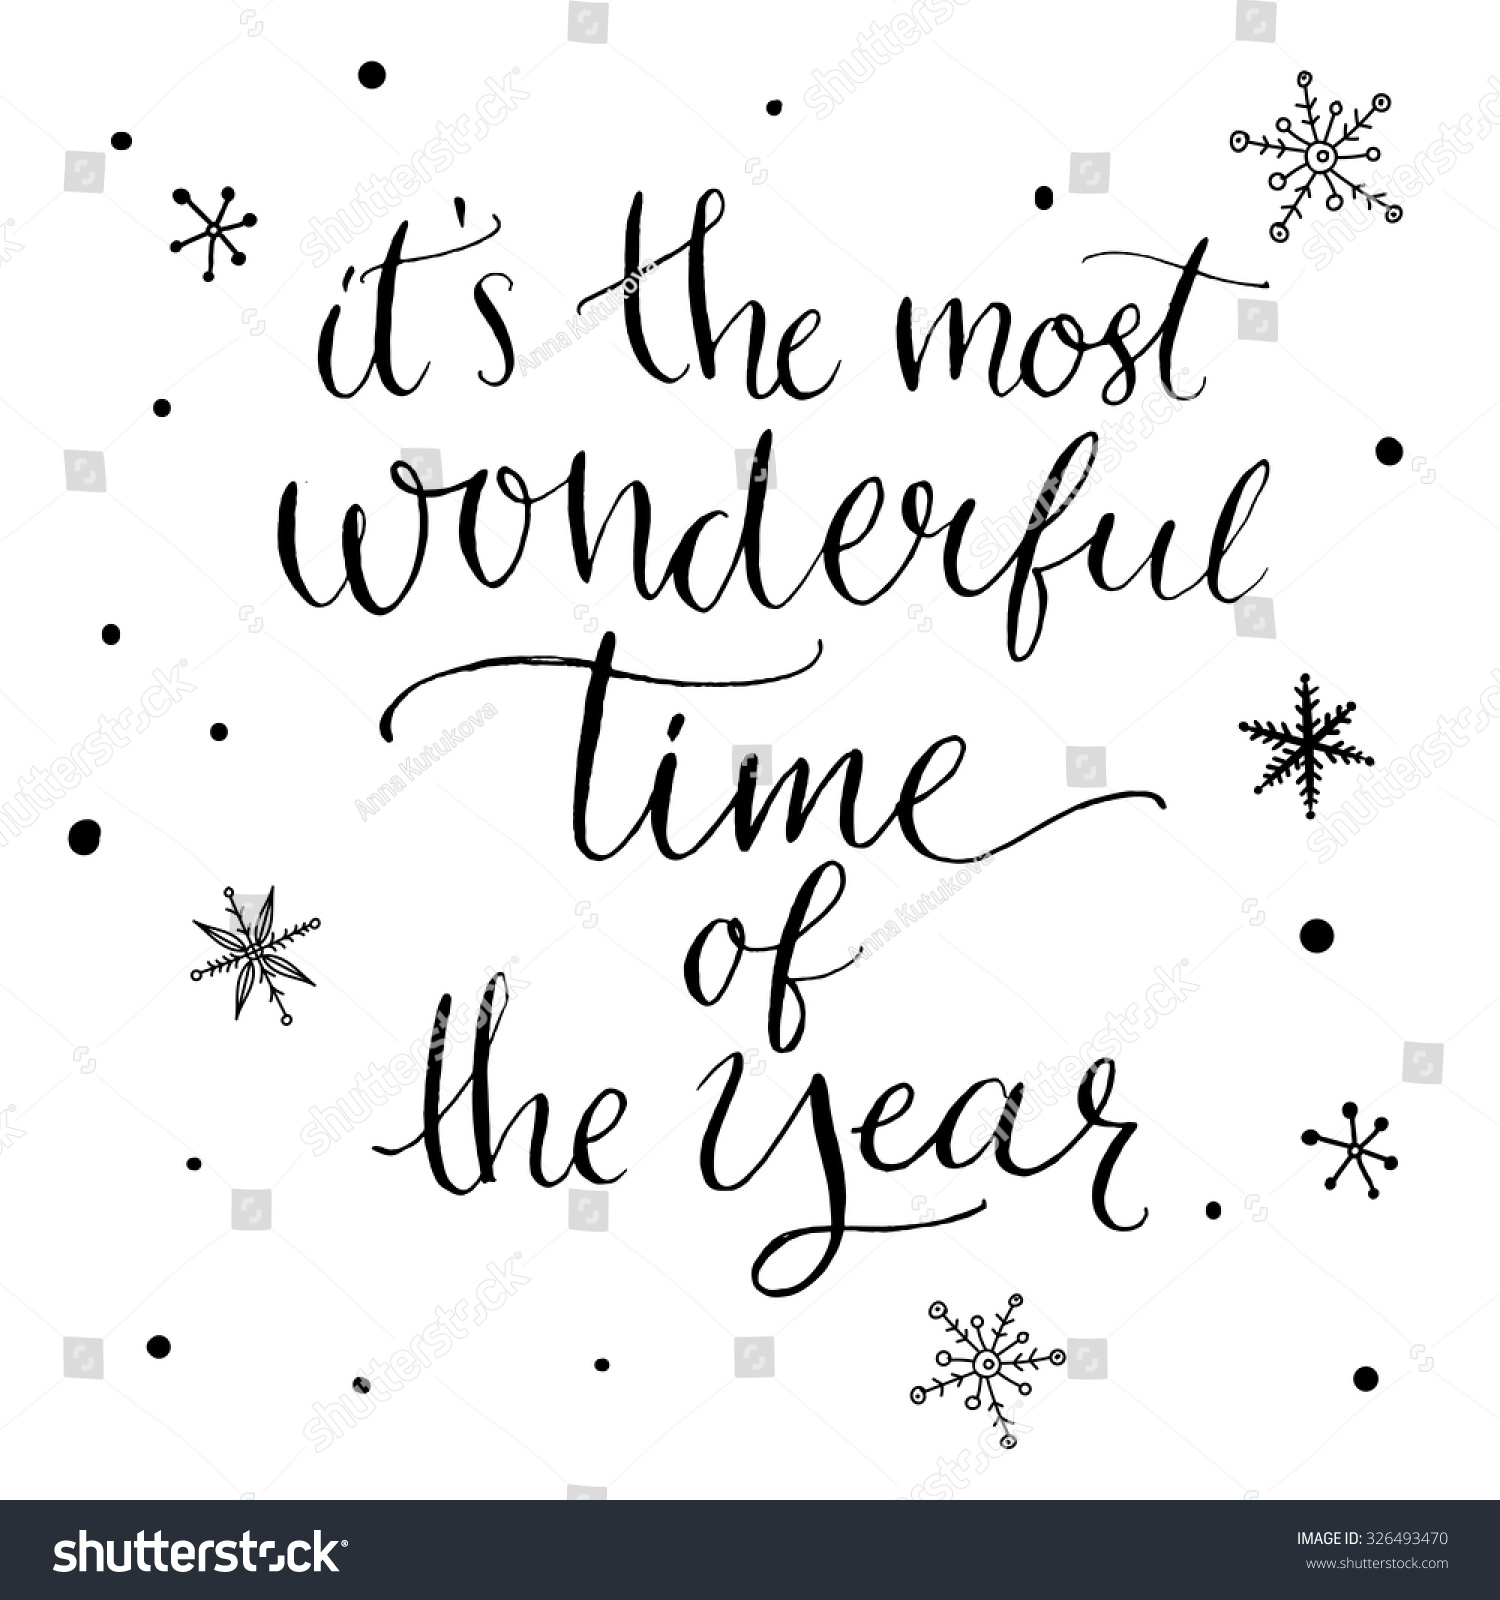 the most wonderful time of the year essay The holidays tend to be a time of increased stress calendars are more packed than usual, financial concerns may bubble up, and there can be a lot of unrealistic expectations around how things should be and how we should feel.